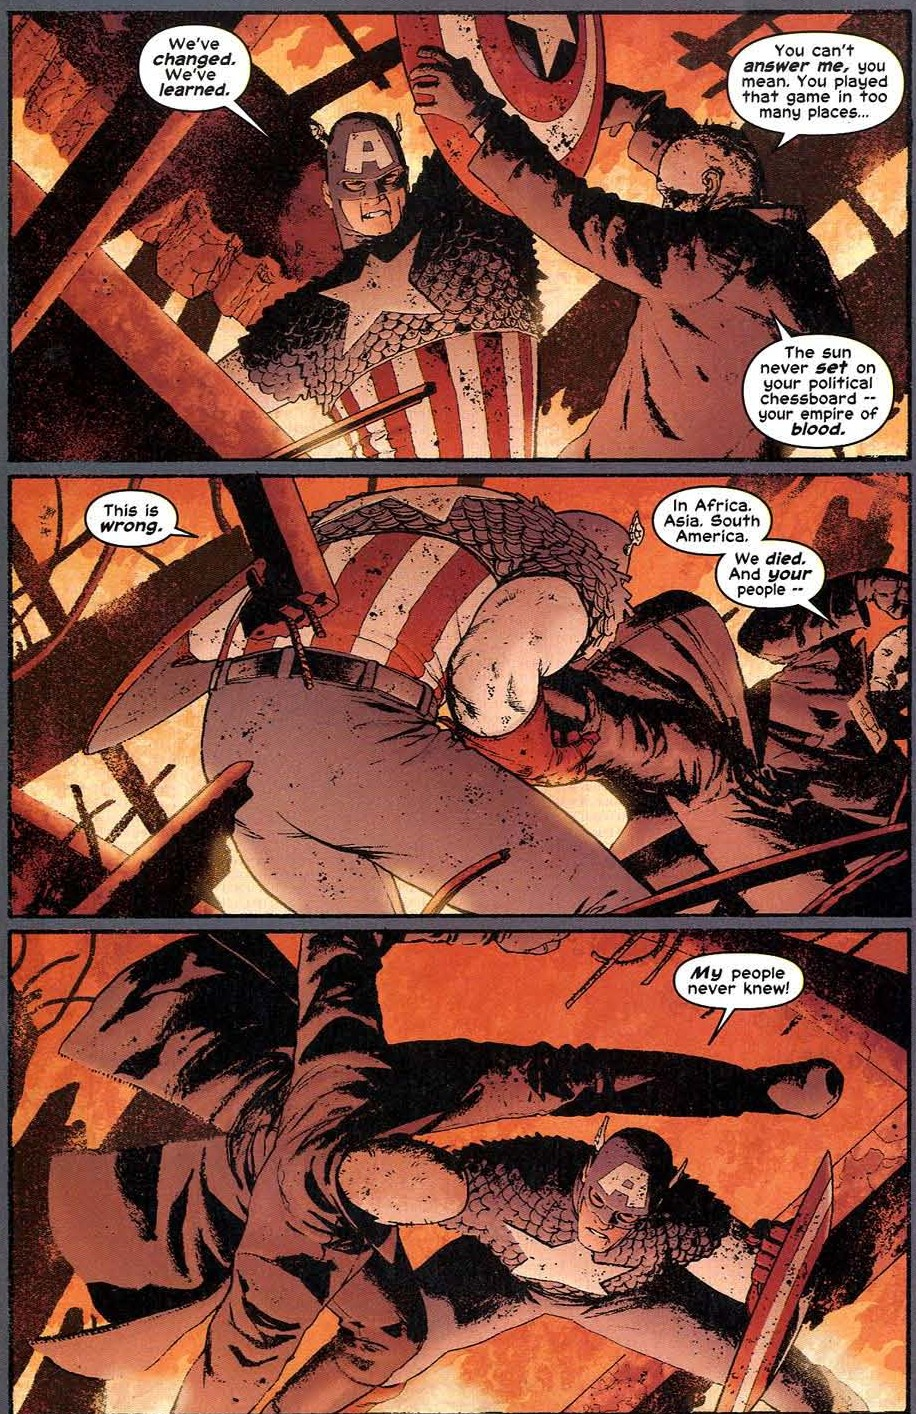 Captain America, Paragon of Virtue and of Turning the Other Cheek